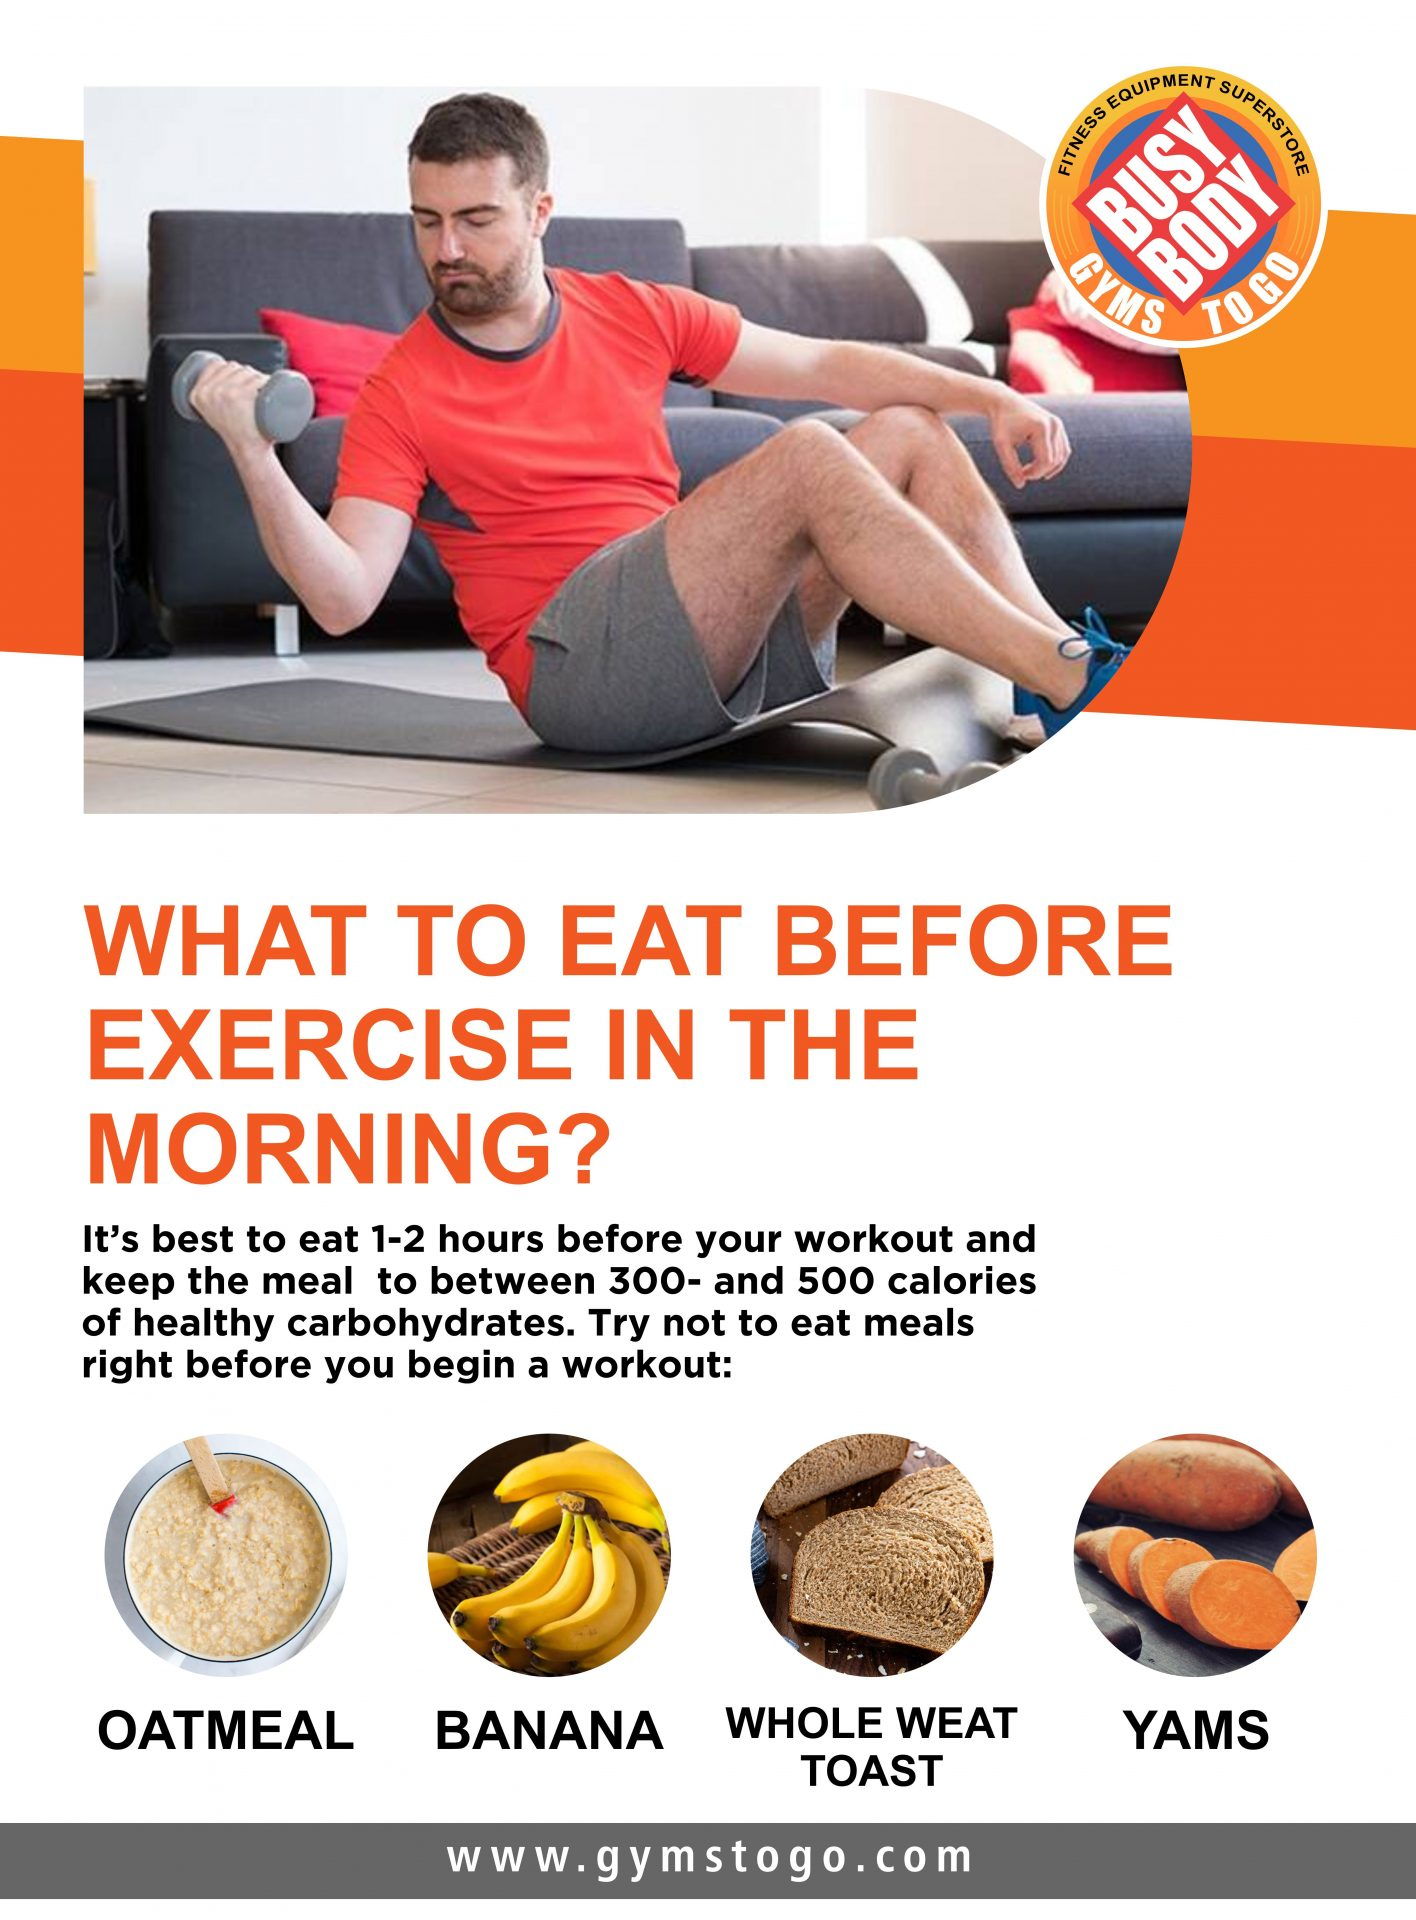 What to Eat before Exercise in the Morning